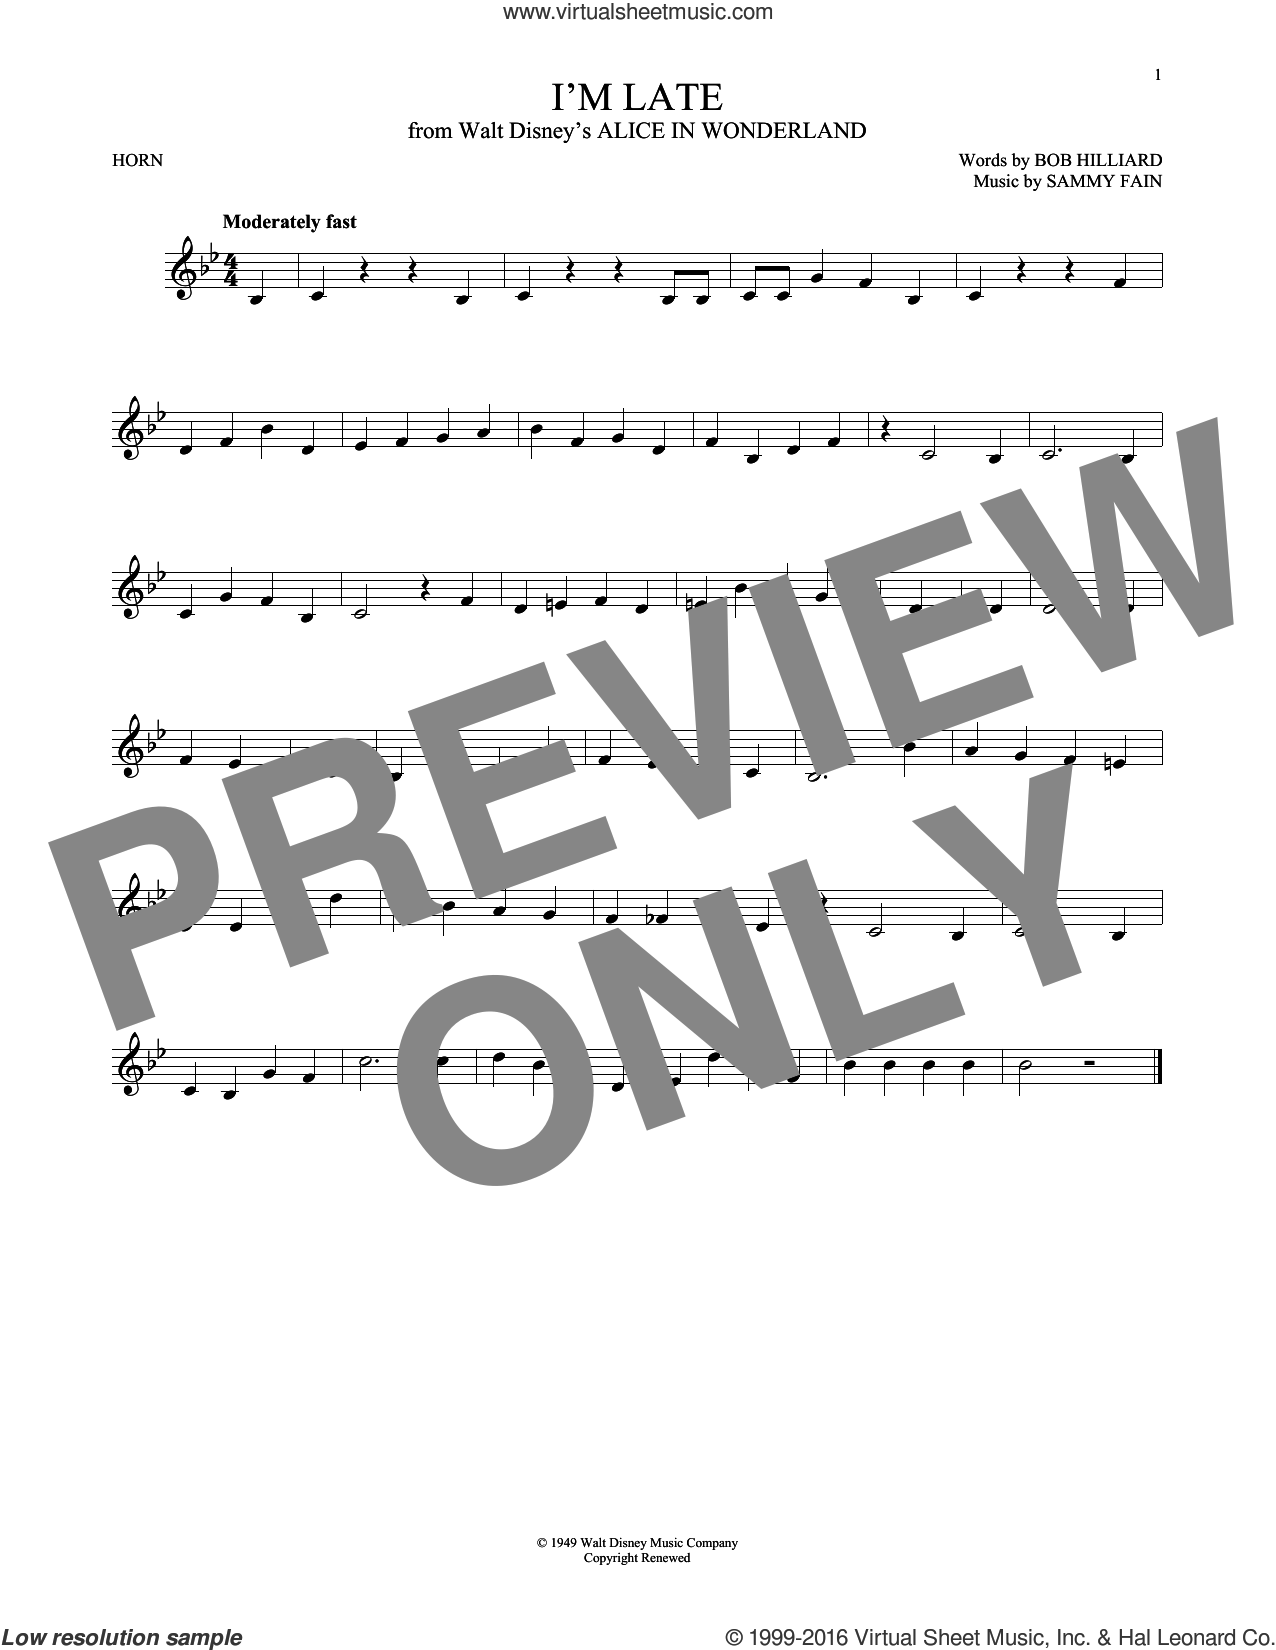 I'm Late sheet music for horn solo by Sammy Fain and Bob Hilliard, intermediate skill level